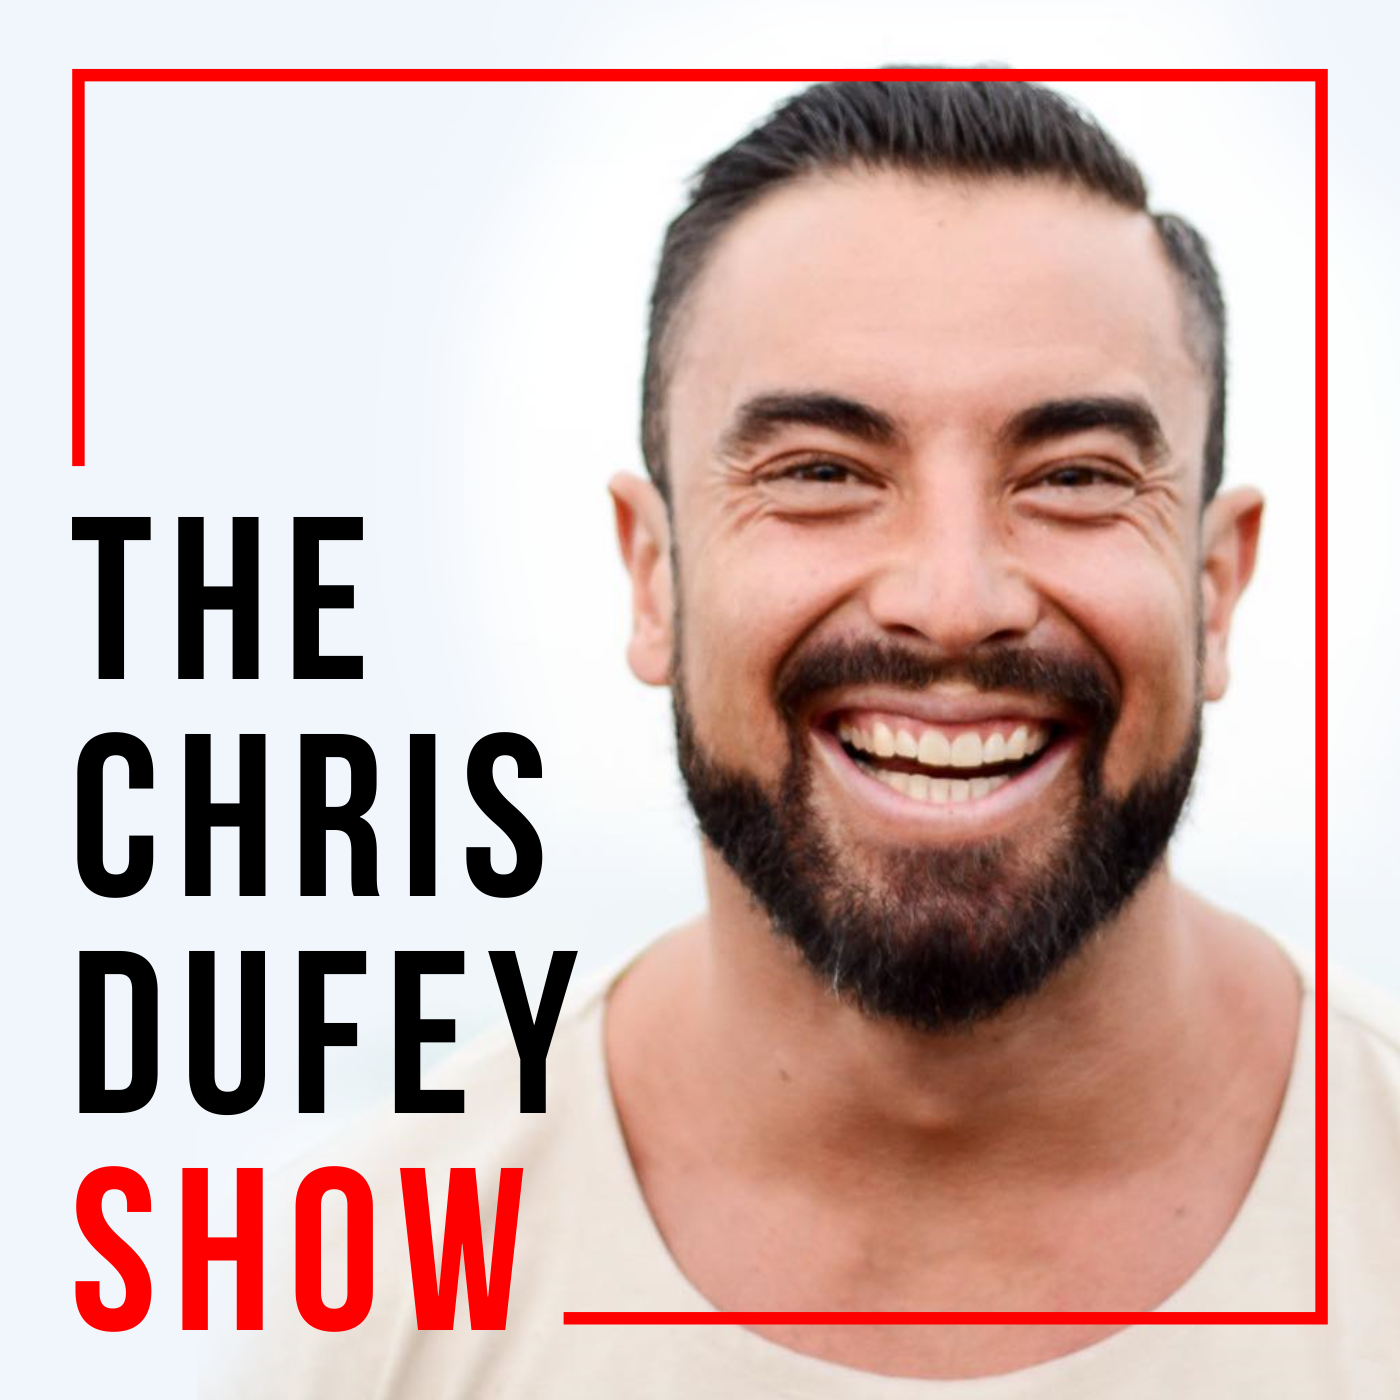 The Chris Dufey Show show art